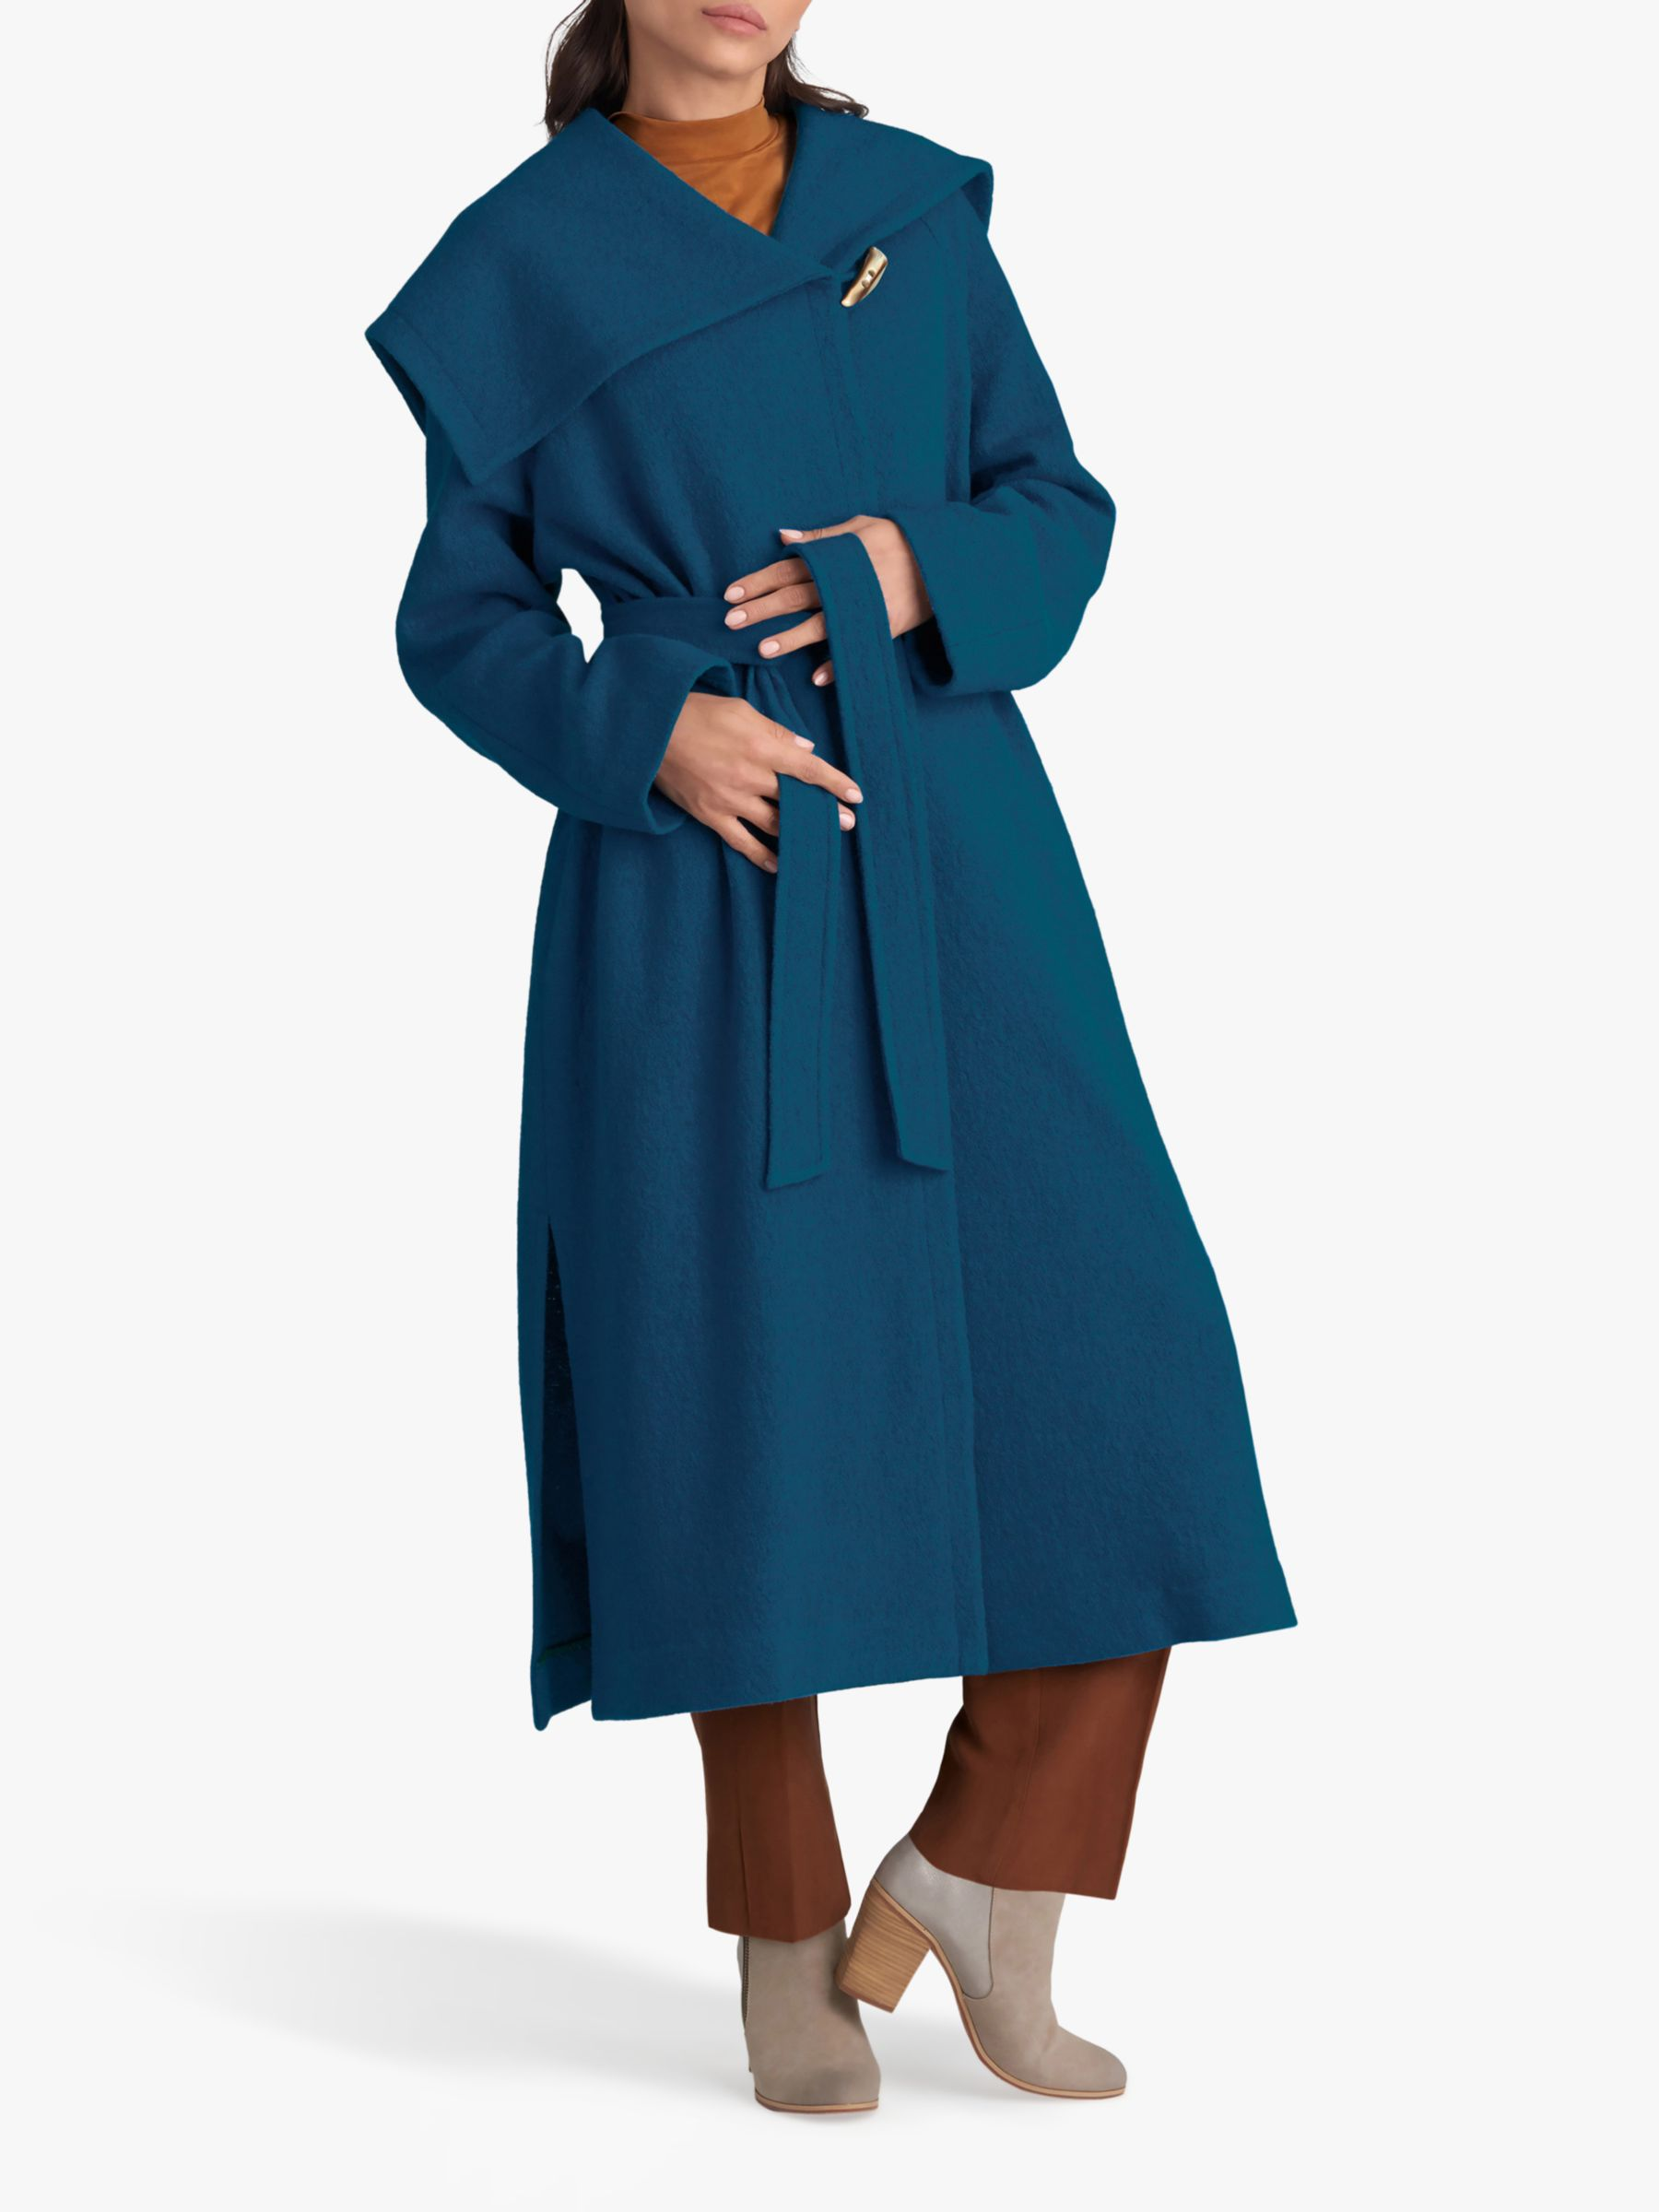 Simplicity Simplicity Misses Wrap Coat And Jacket, 9015, R5